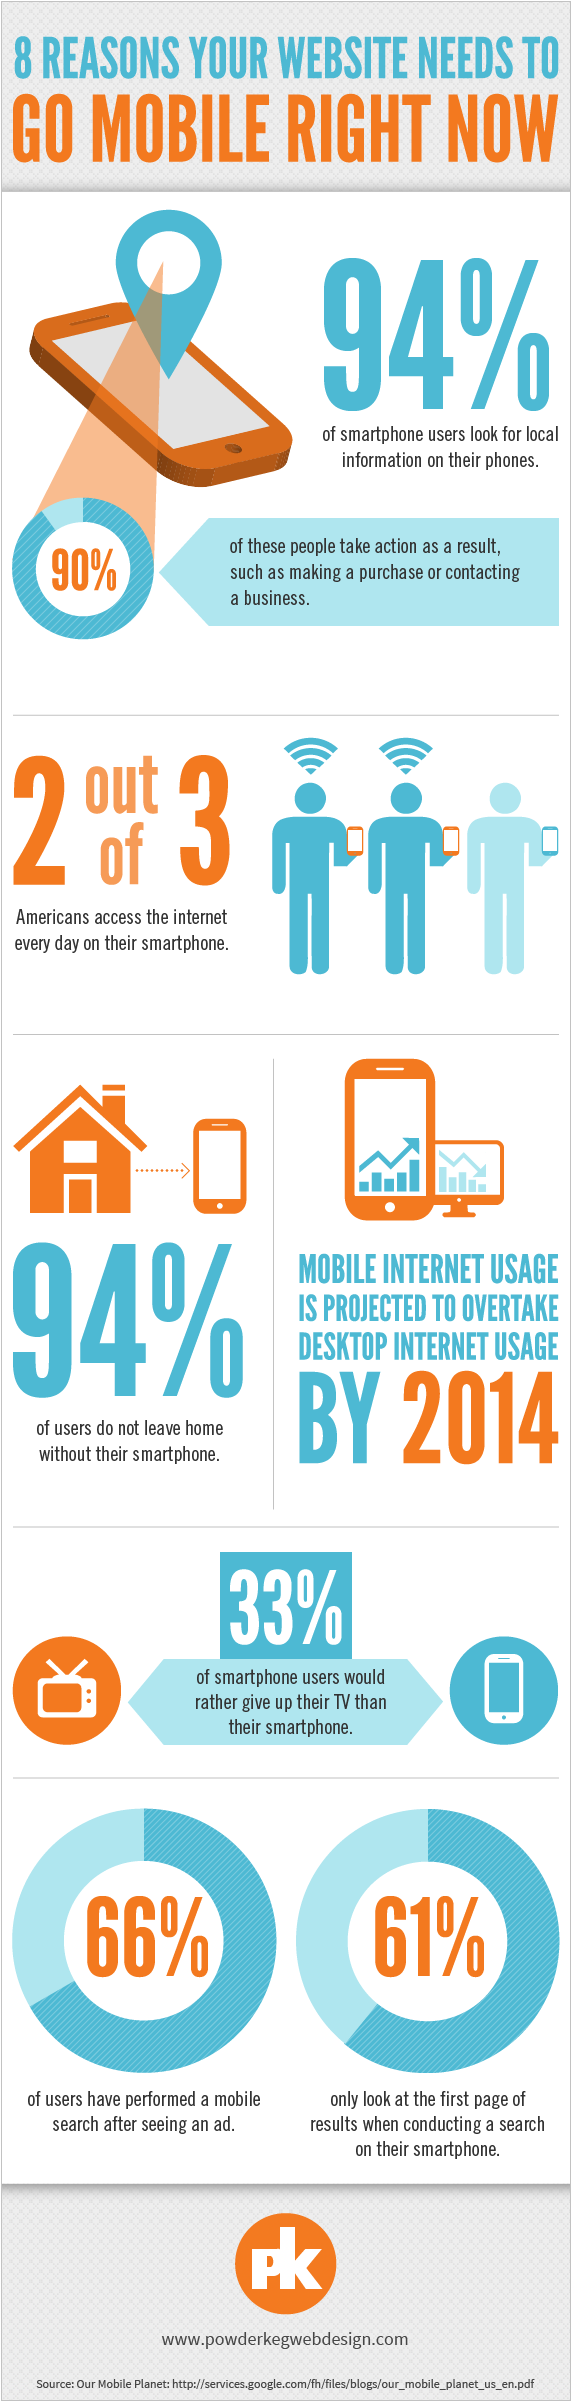 Go Mobile Now-Infographic